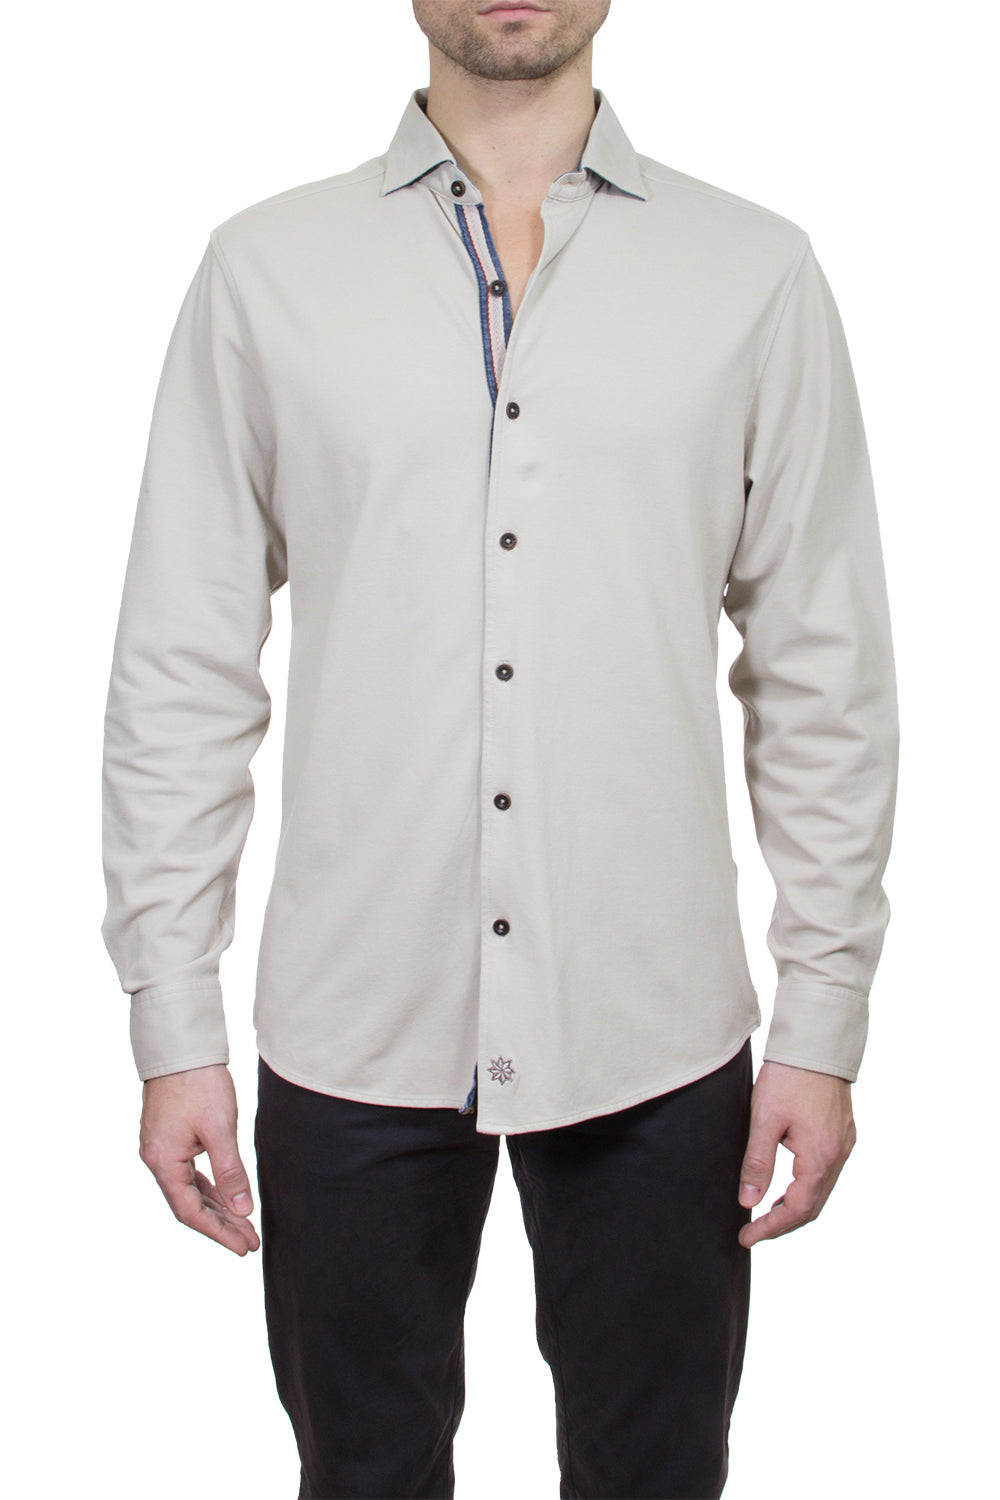 Thaddeus SHIVELY Long Sleeve Pique Button-Up Knit Shirt